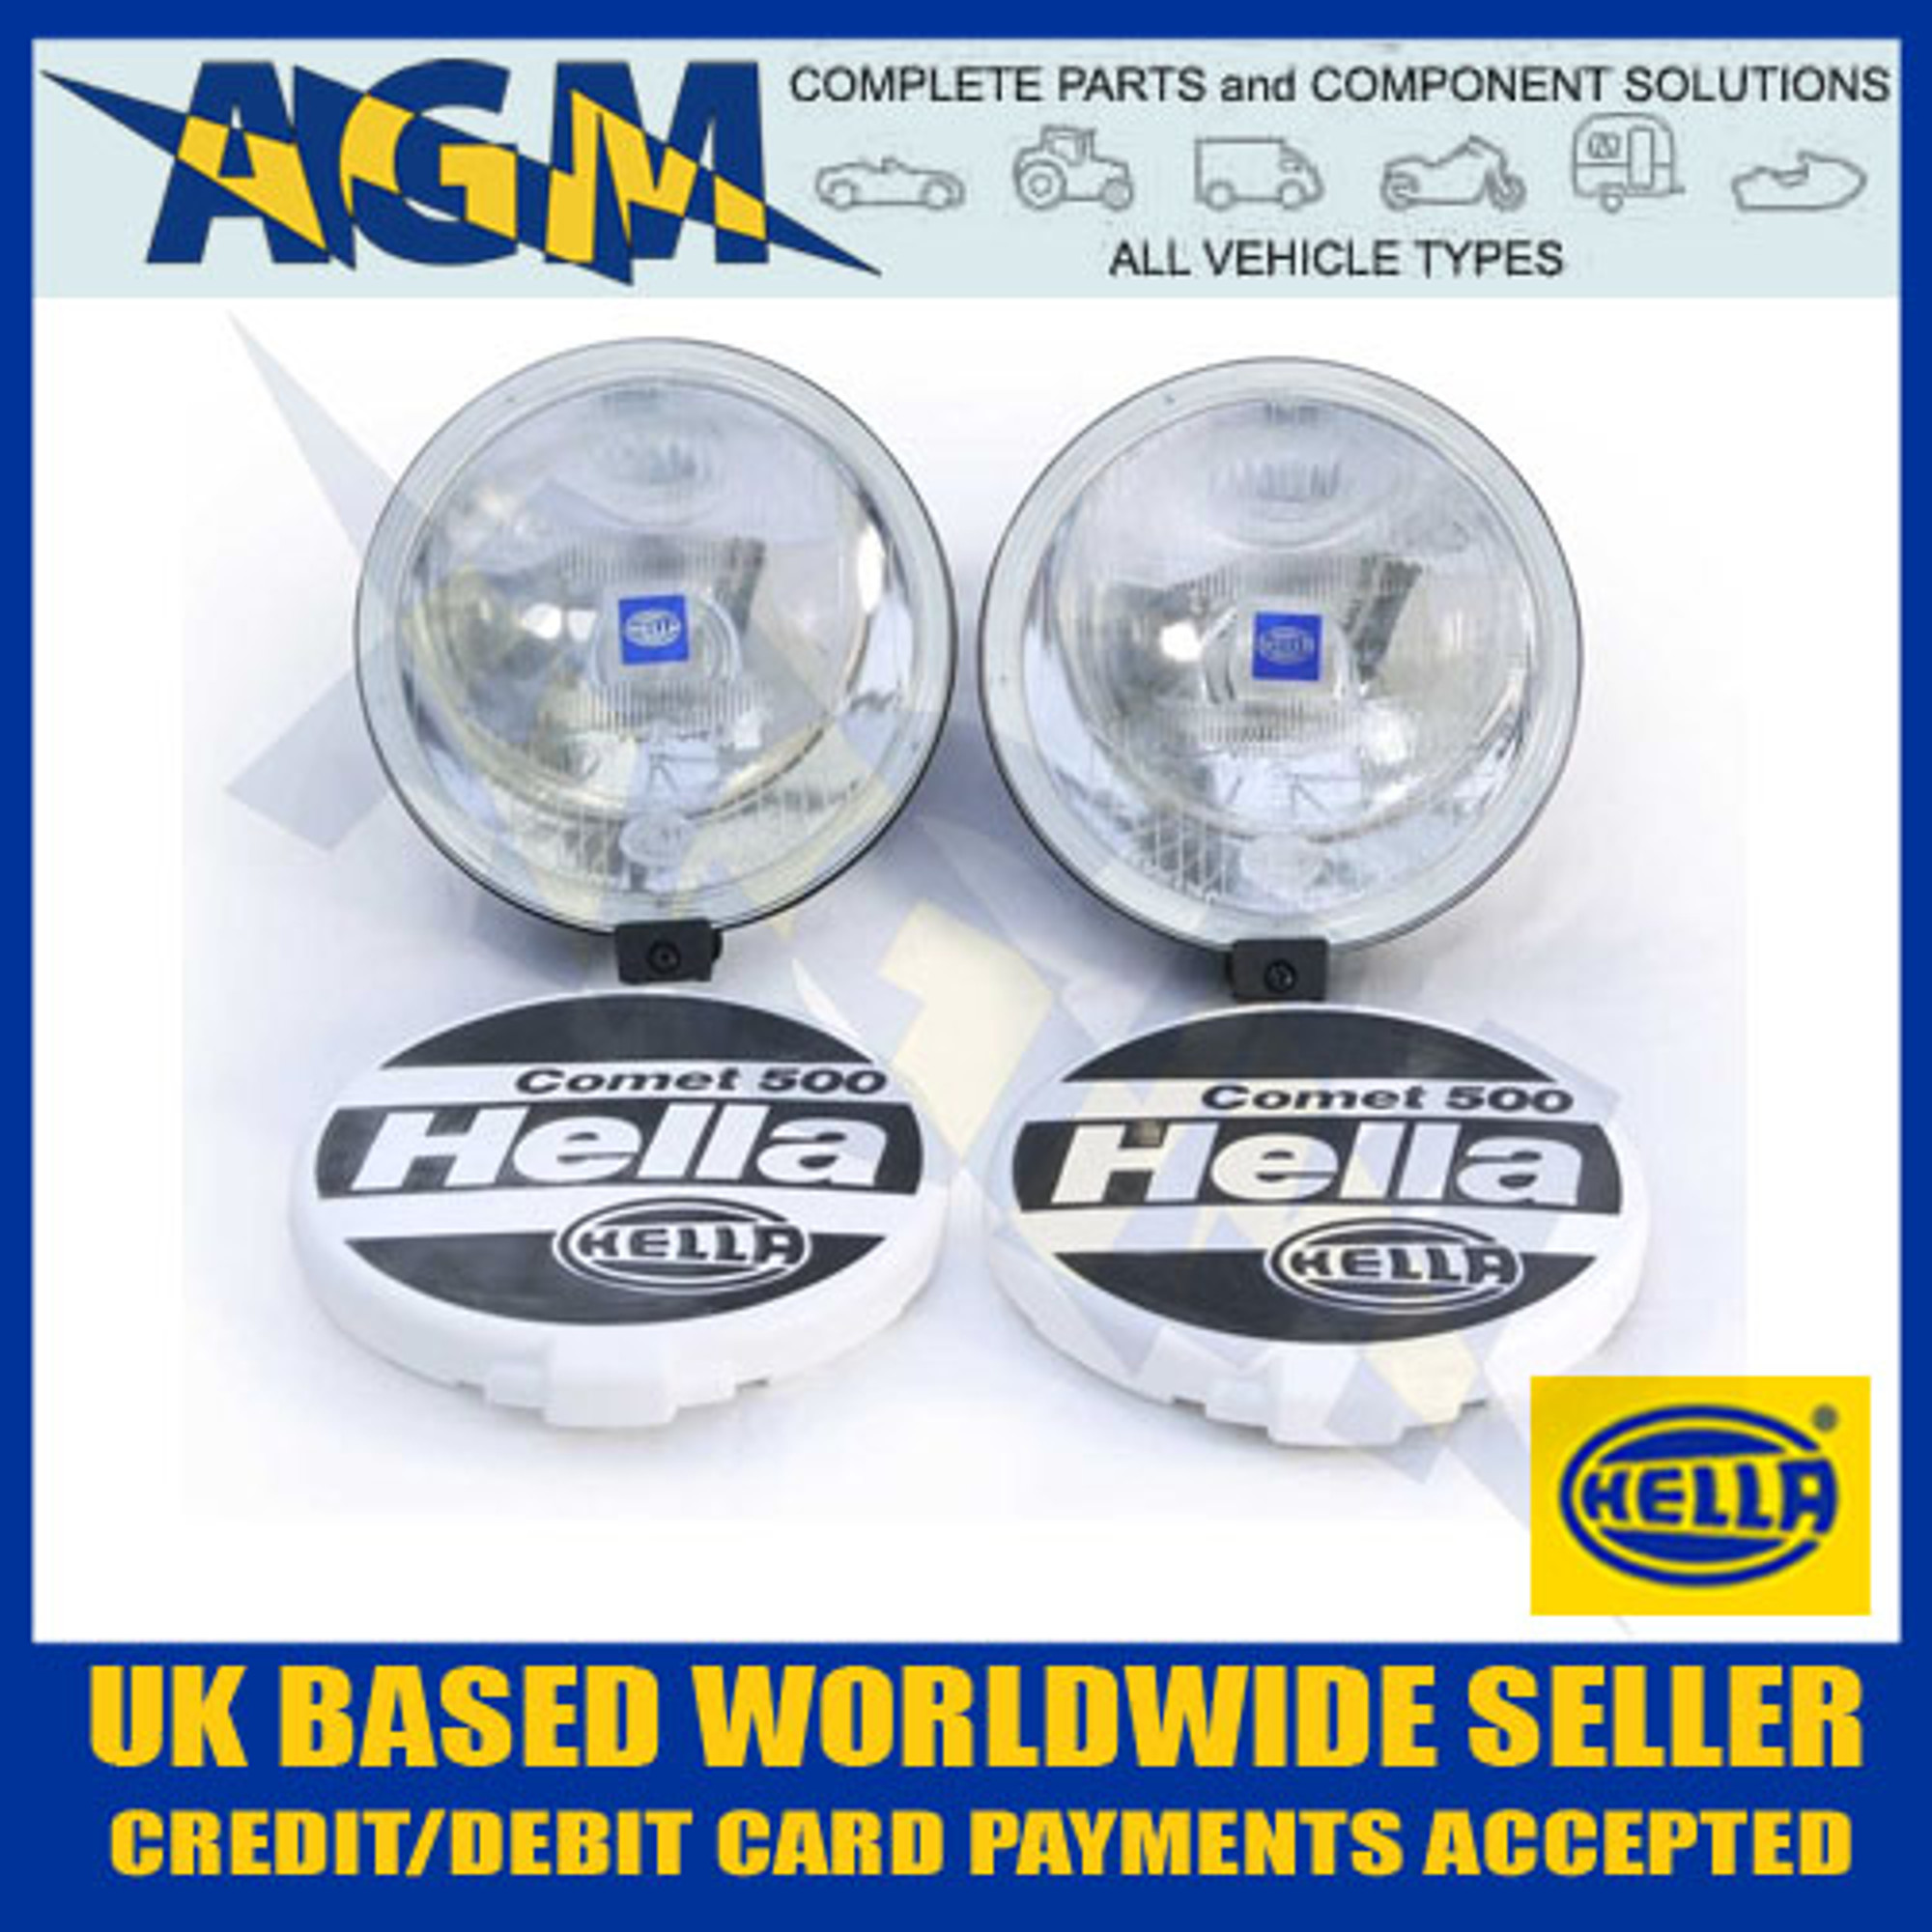 medium resolution of hella comet 500 lamp set with two lamps covers and fitting kit 1f4005750 731 s